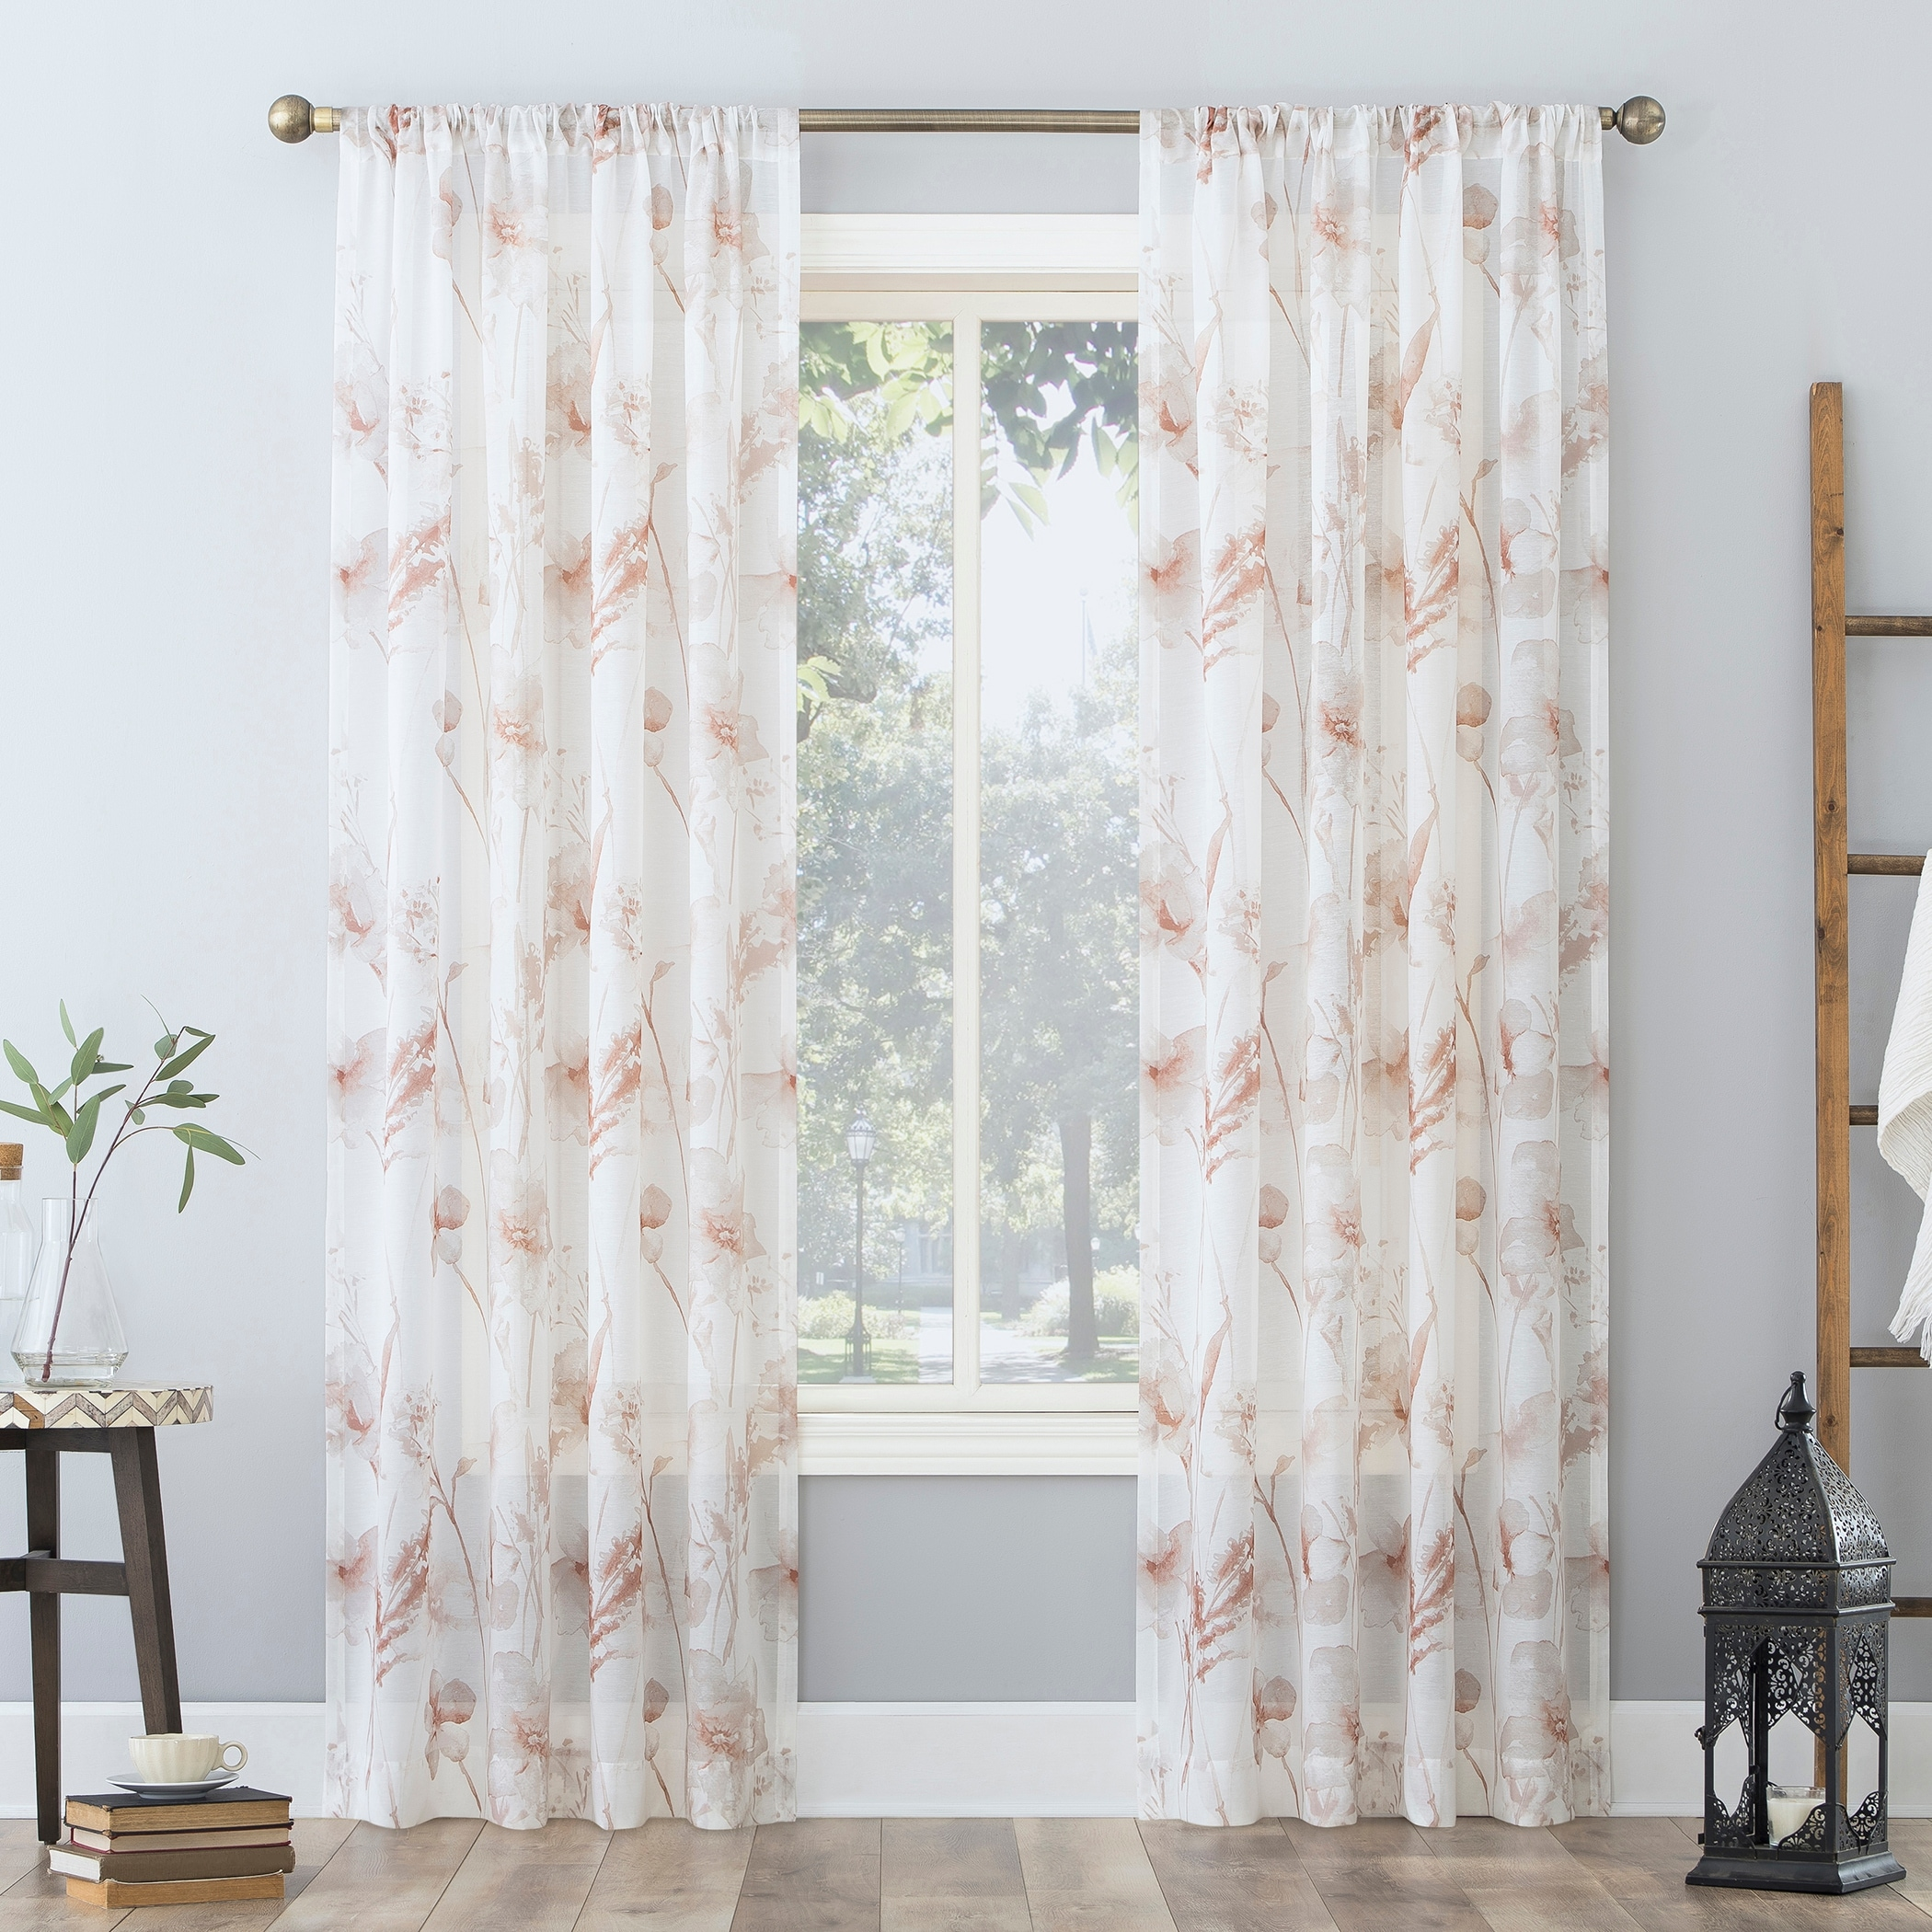 Shop For No 918 Sura Floral Watercolor Sheer Rod Pocket Curtain Panel Get Free Delivery On Everything At Overstock Your Online Home Decor Outlet Store Get 5 In Rewards With Club O 32809861